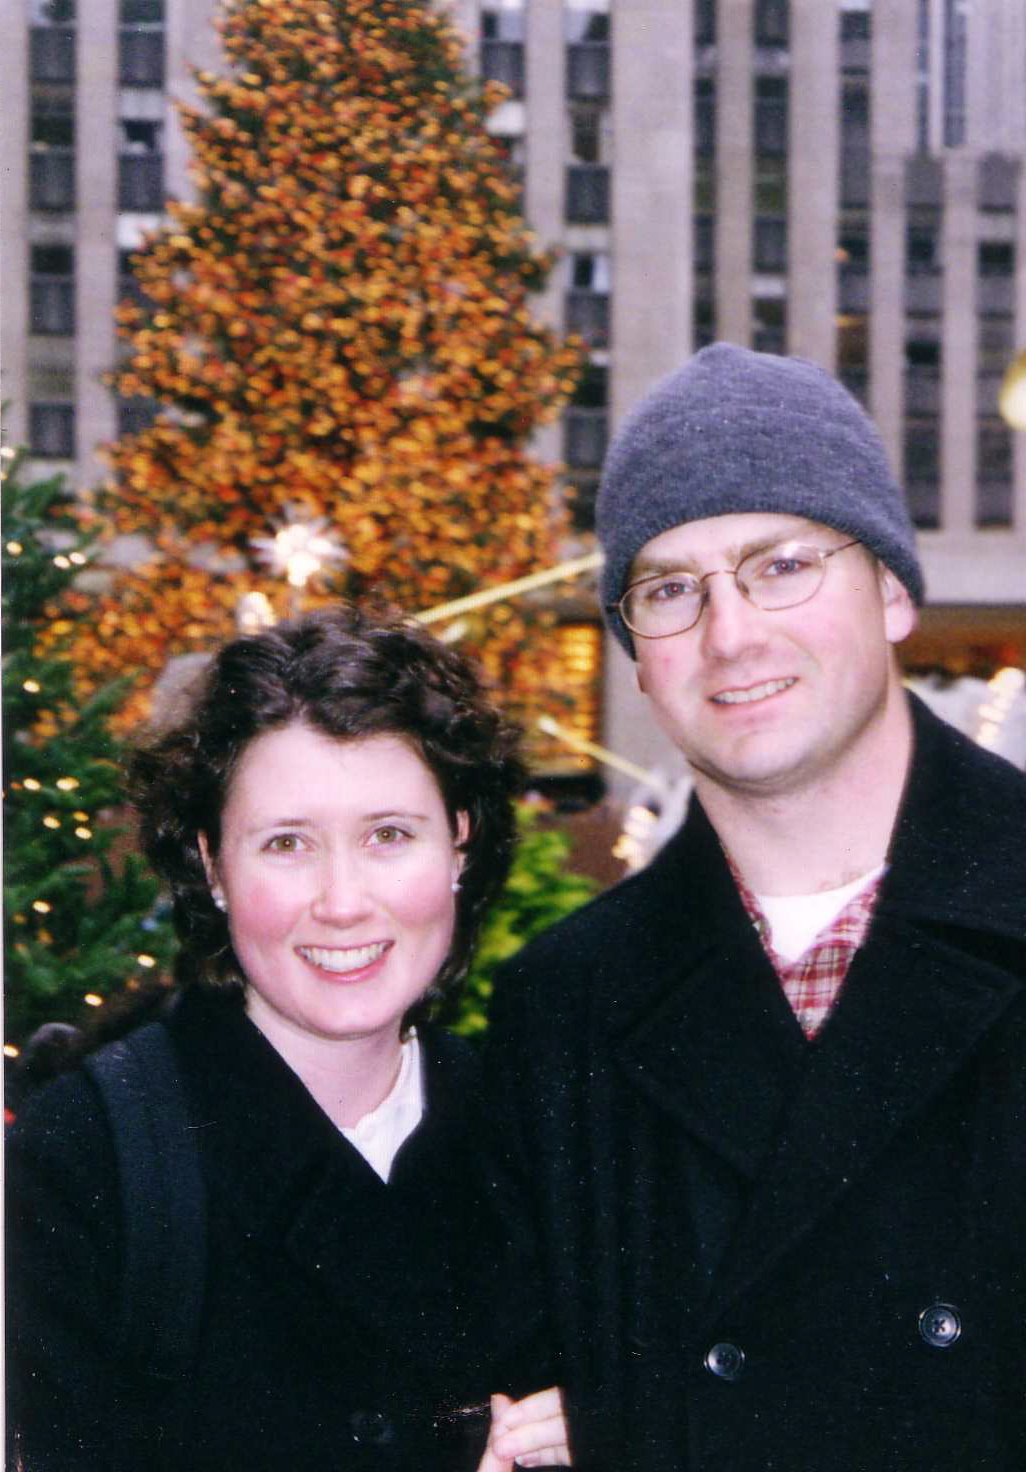 A young couple in front of the Rockefeller Center Christmas tree